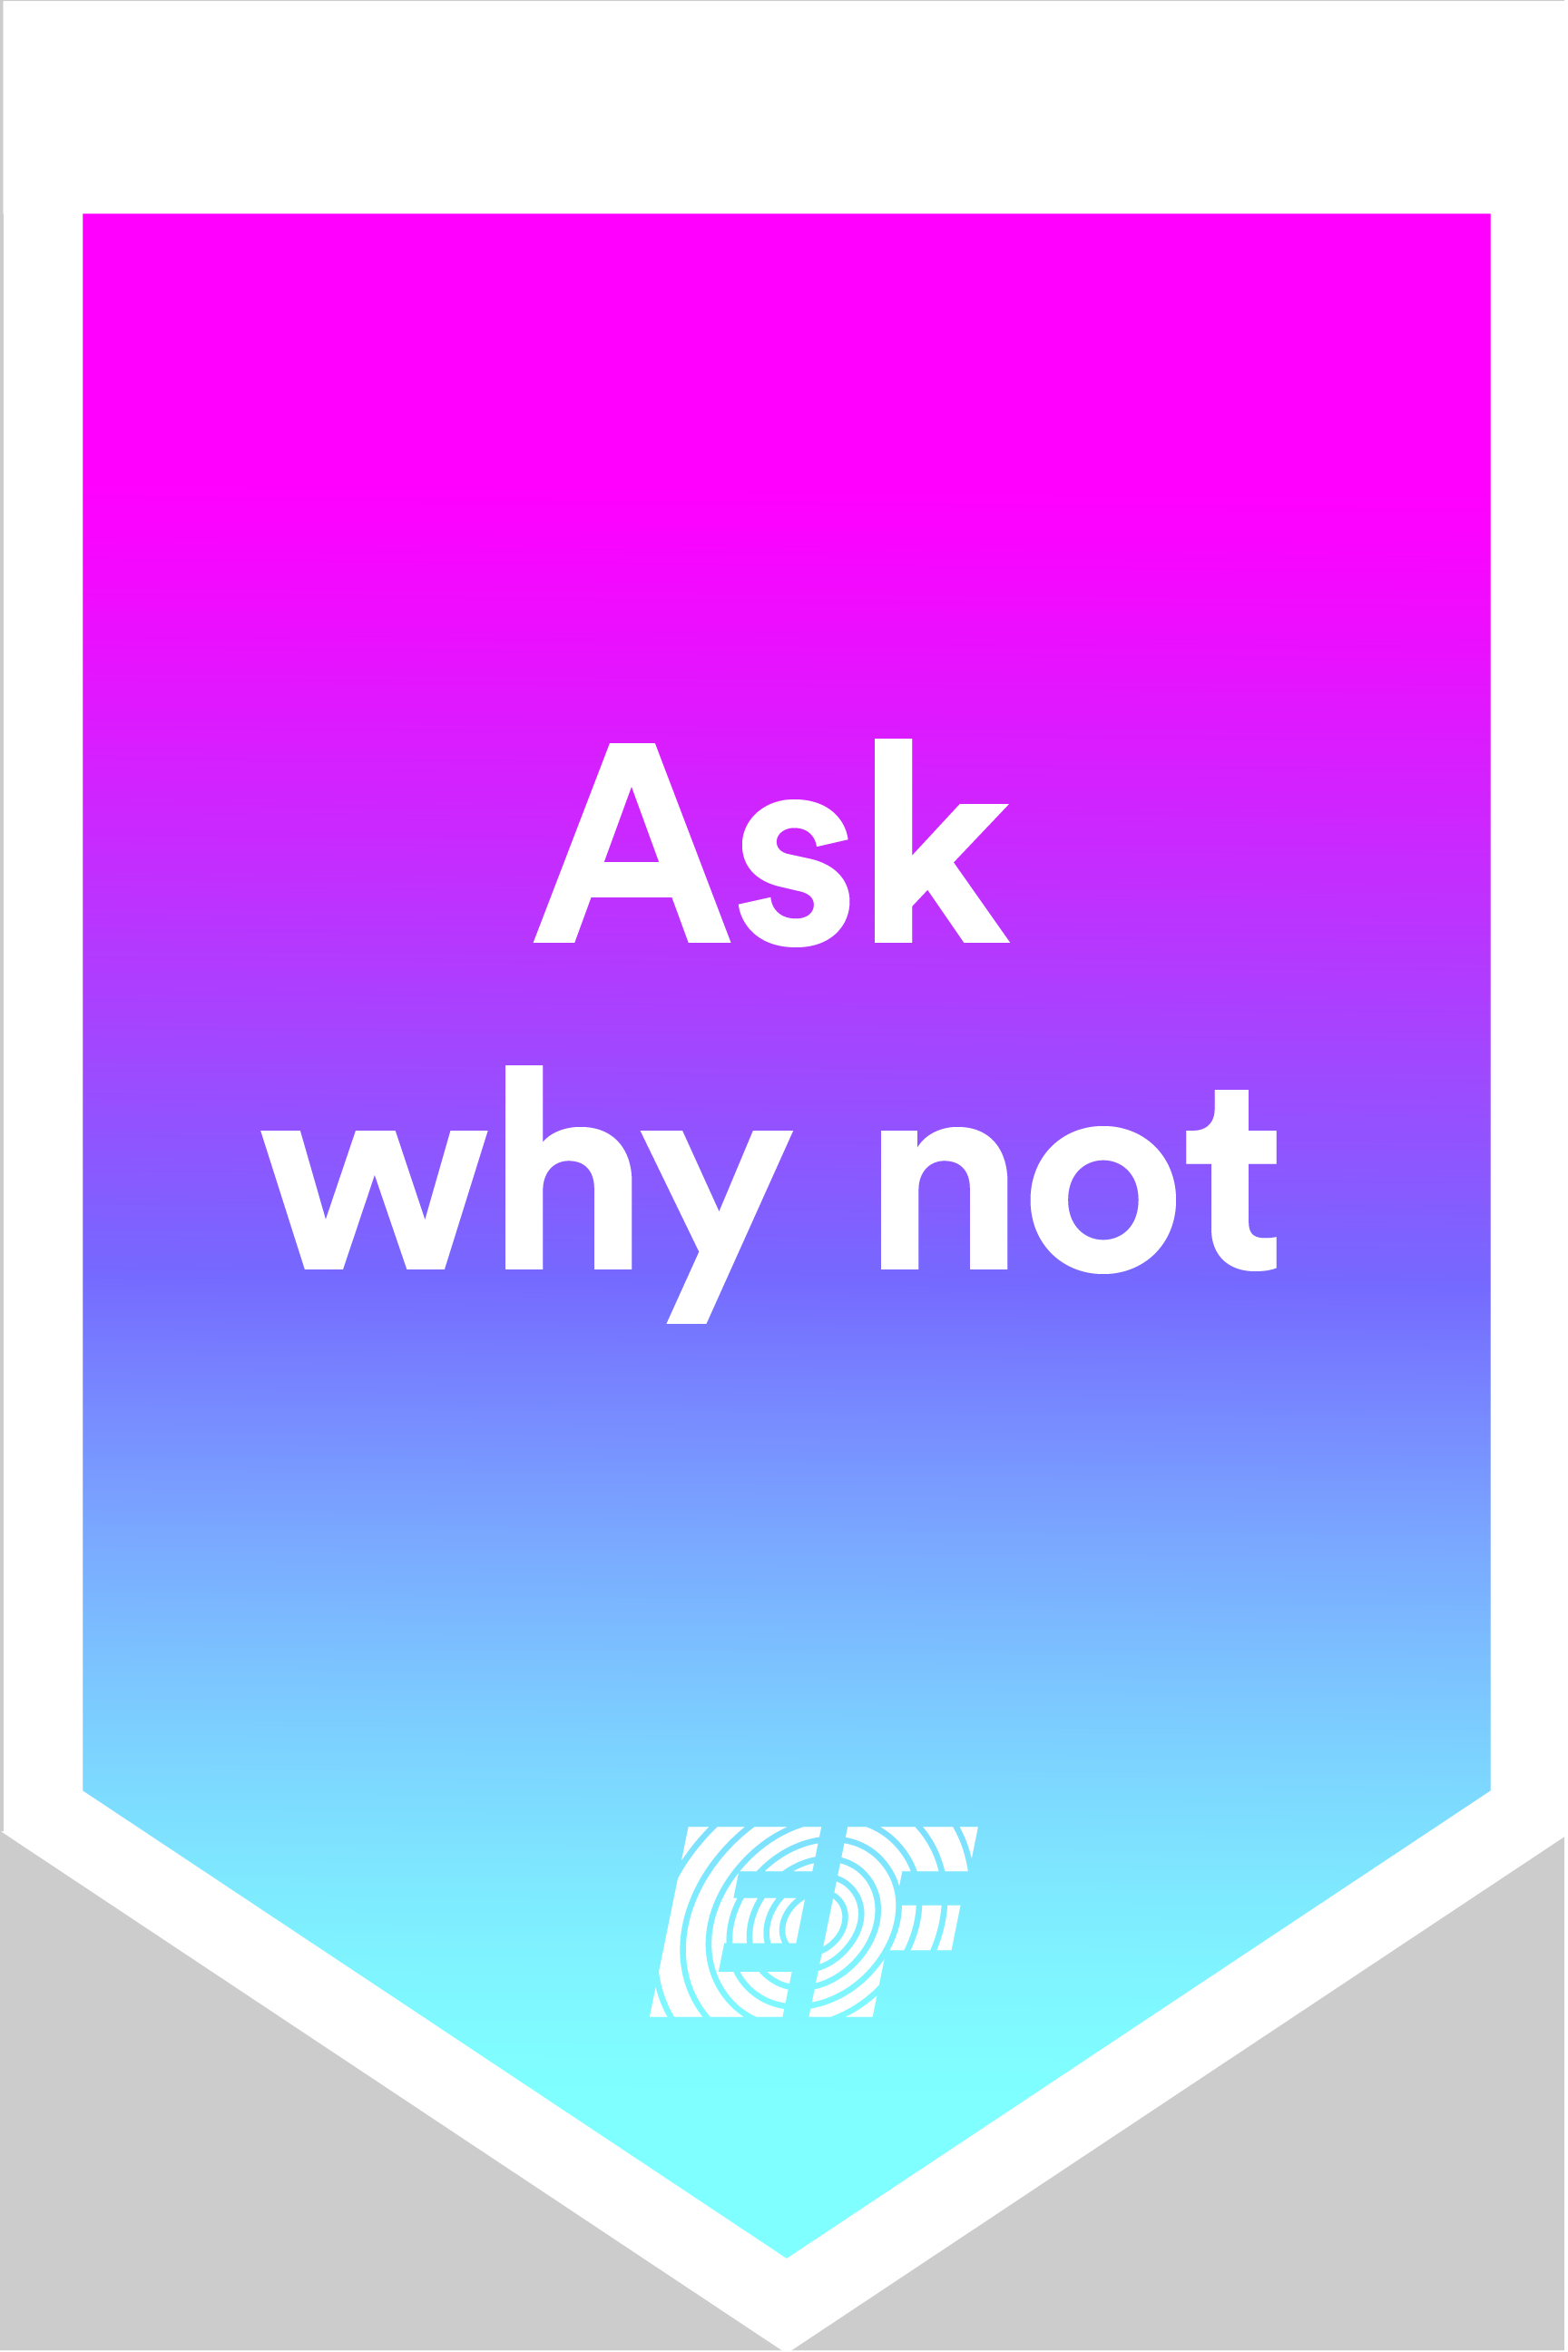 ask why not - g-100.jpg